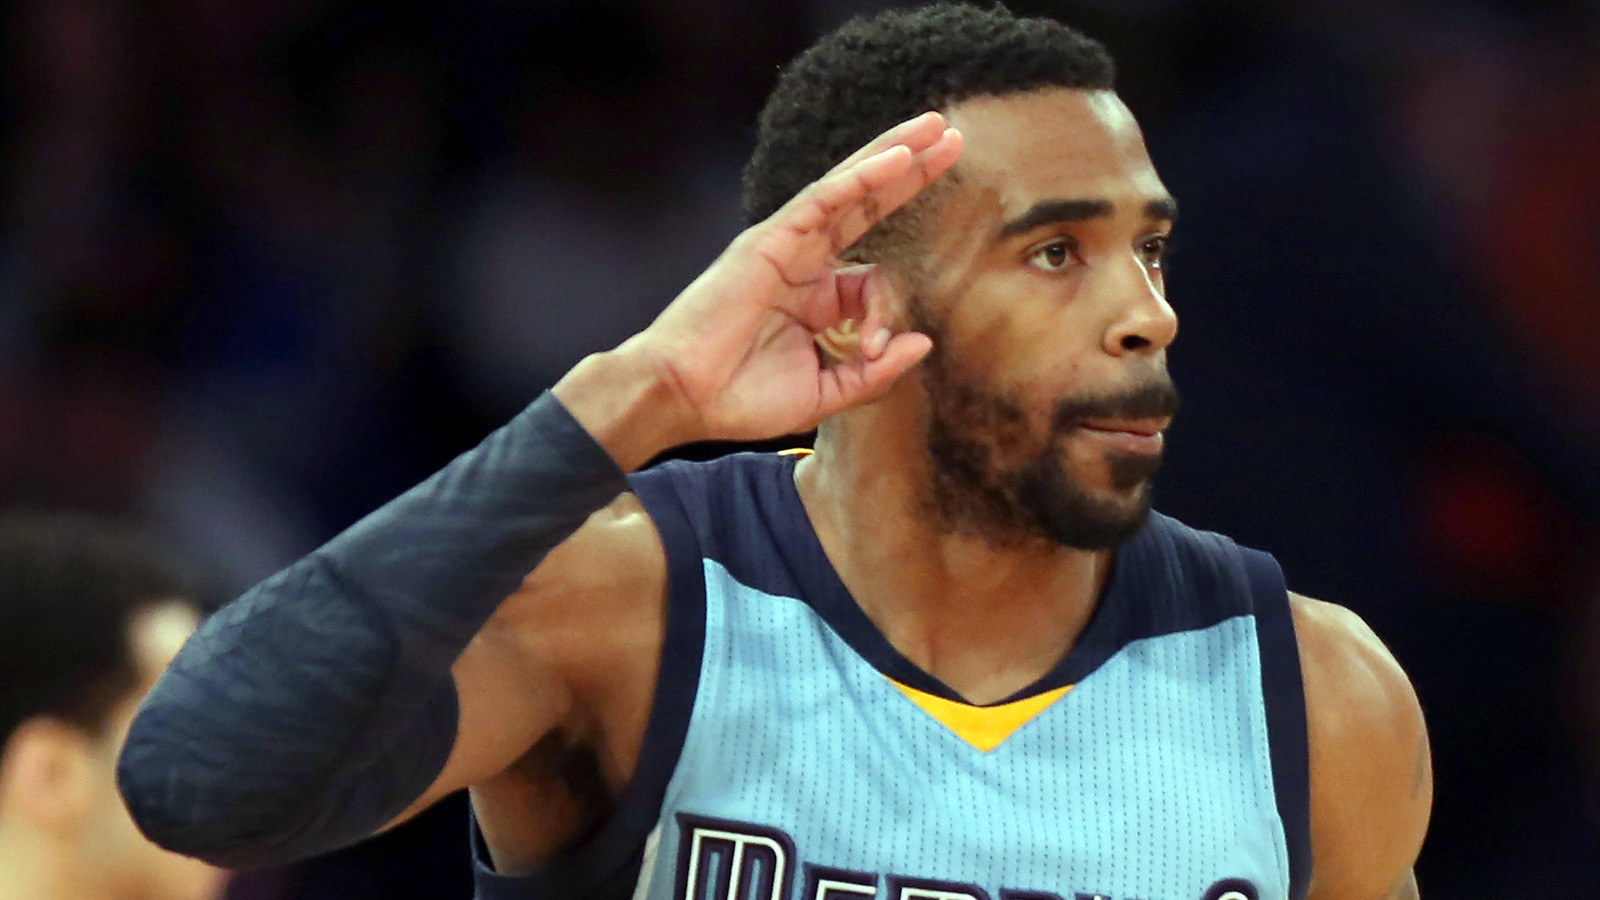 WATCH: Grizzlies' Conley misses free throw from wheelchair